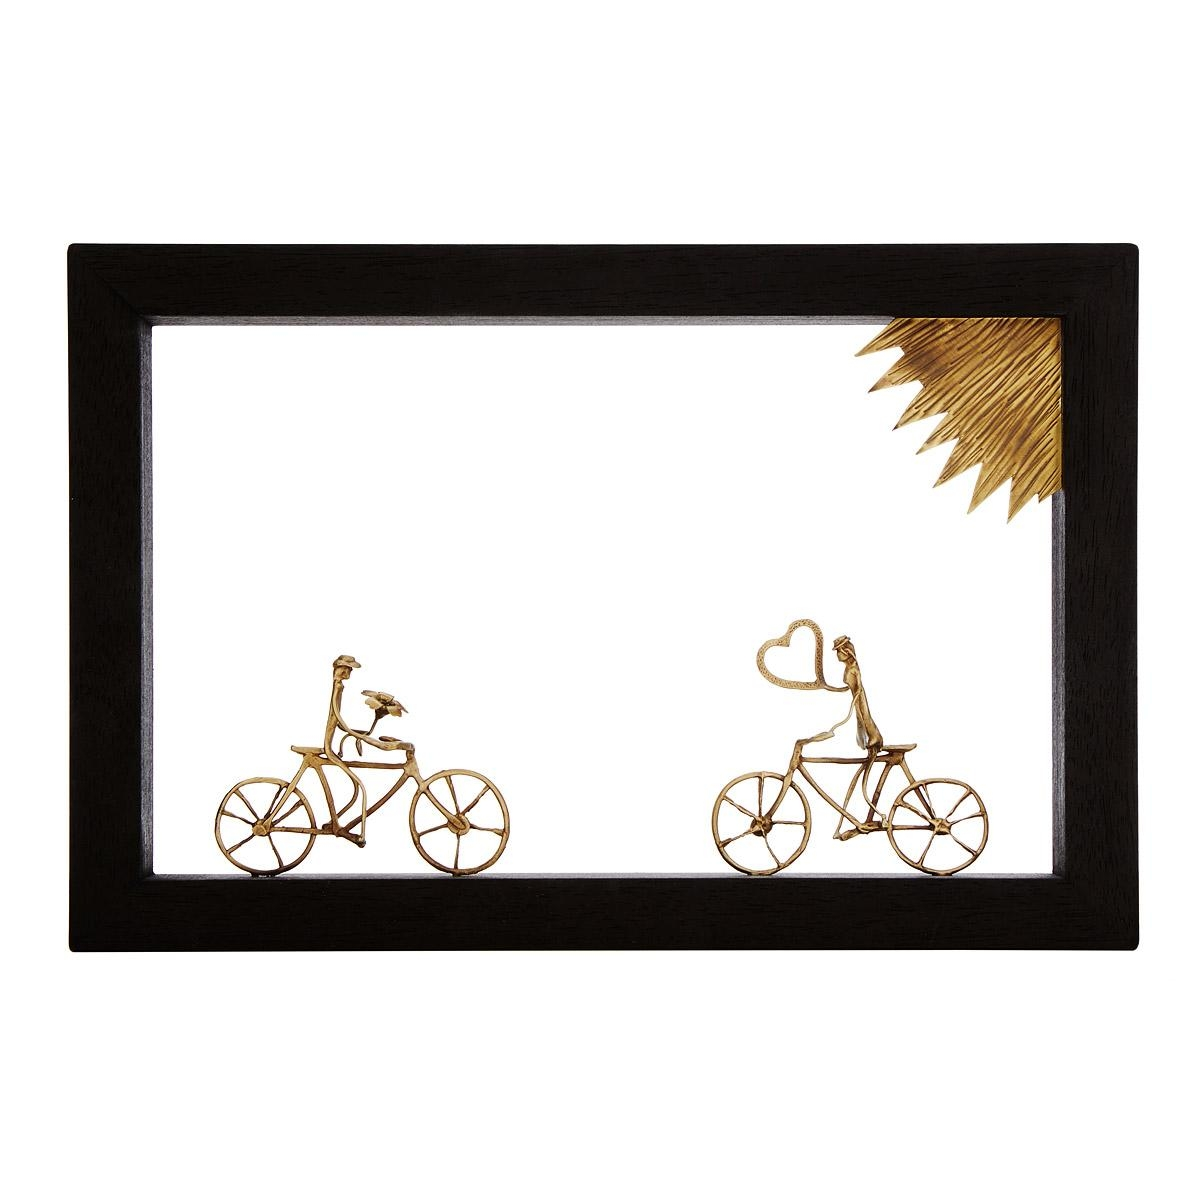 Bike Lovers Wall Sculpture | Bike Art | Uncommongoods With Bicycle Metal Wall Art (Image 7 of 20)